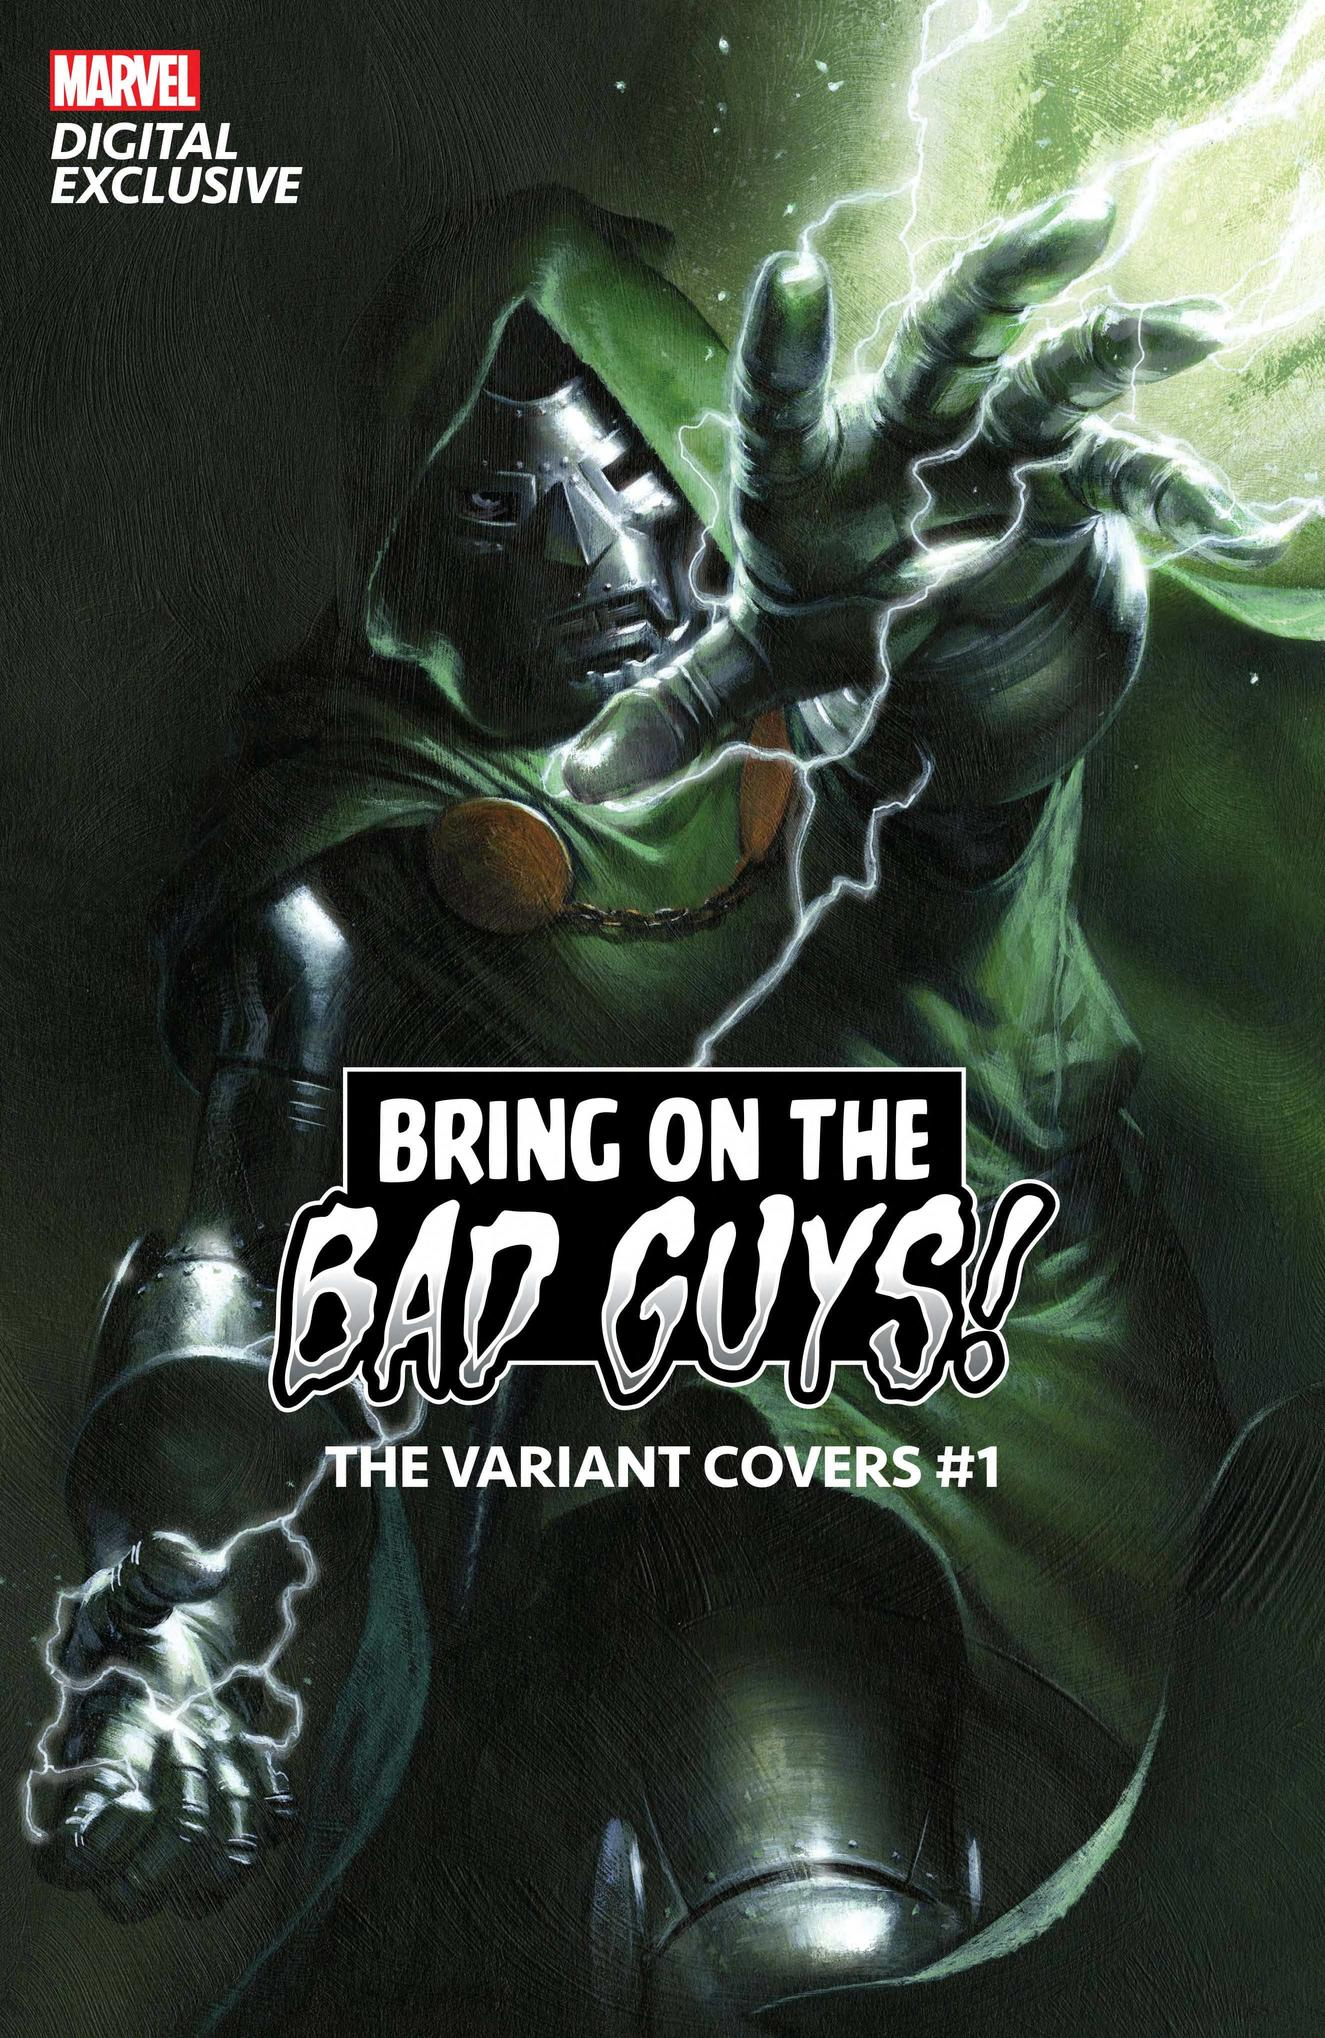 BRING ON THE BAD GUYS:THE VARIANT COVERS #1